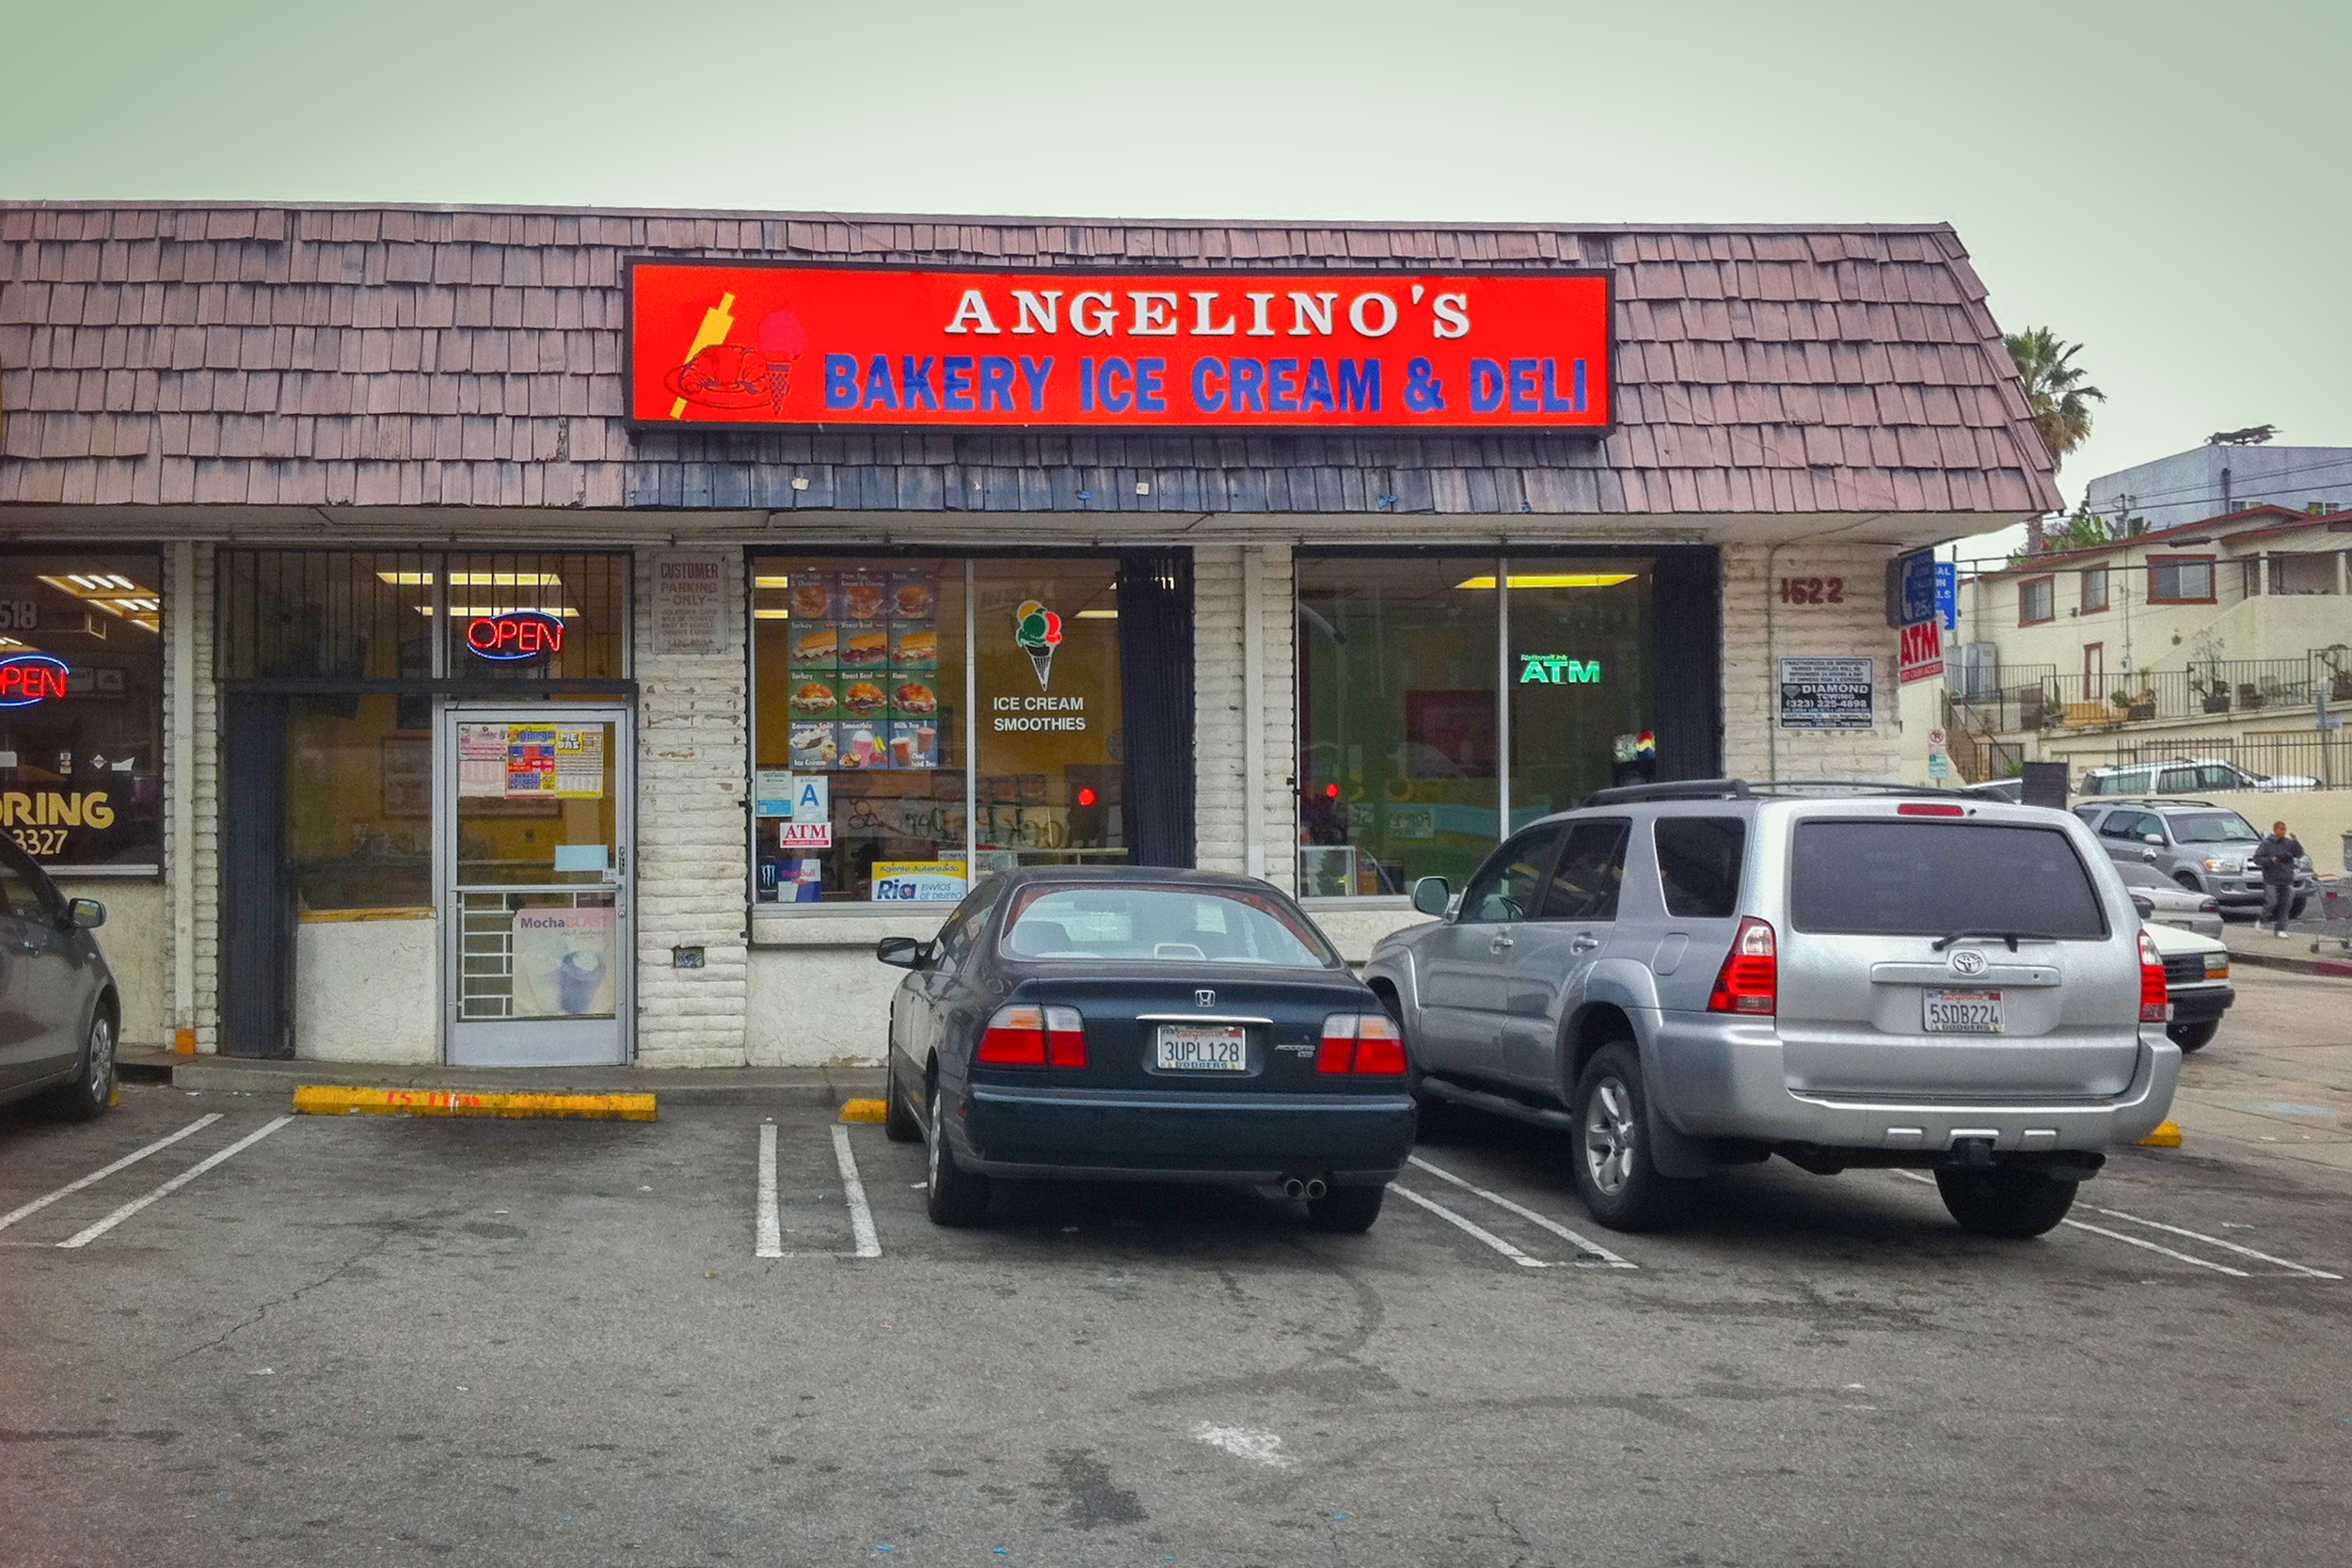 The parking lot of Angelino's Bakery is one of the film locations for  Nightcrawler  - image via  Google .